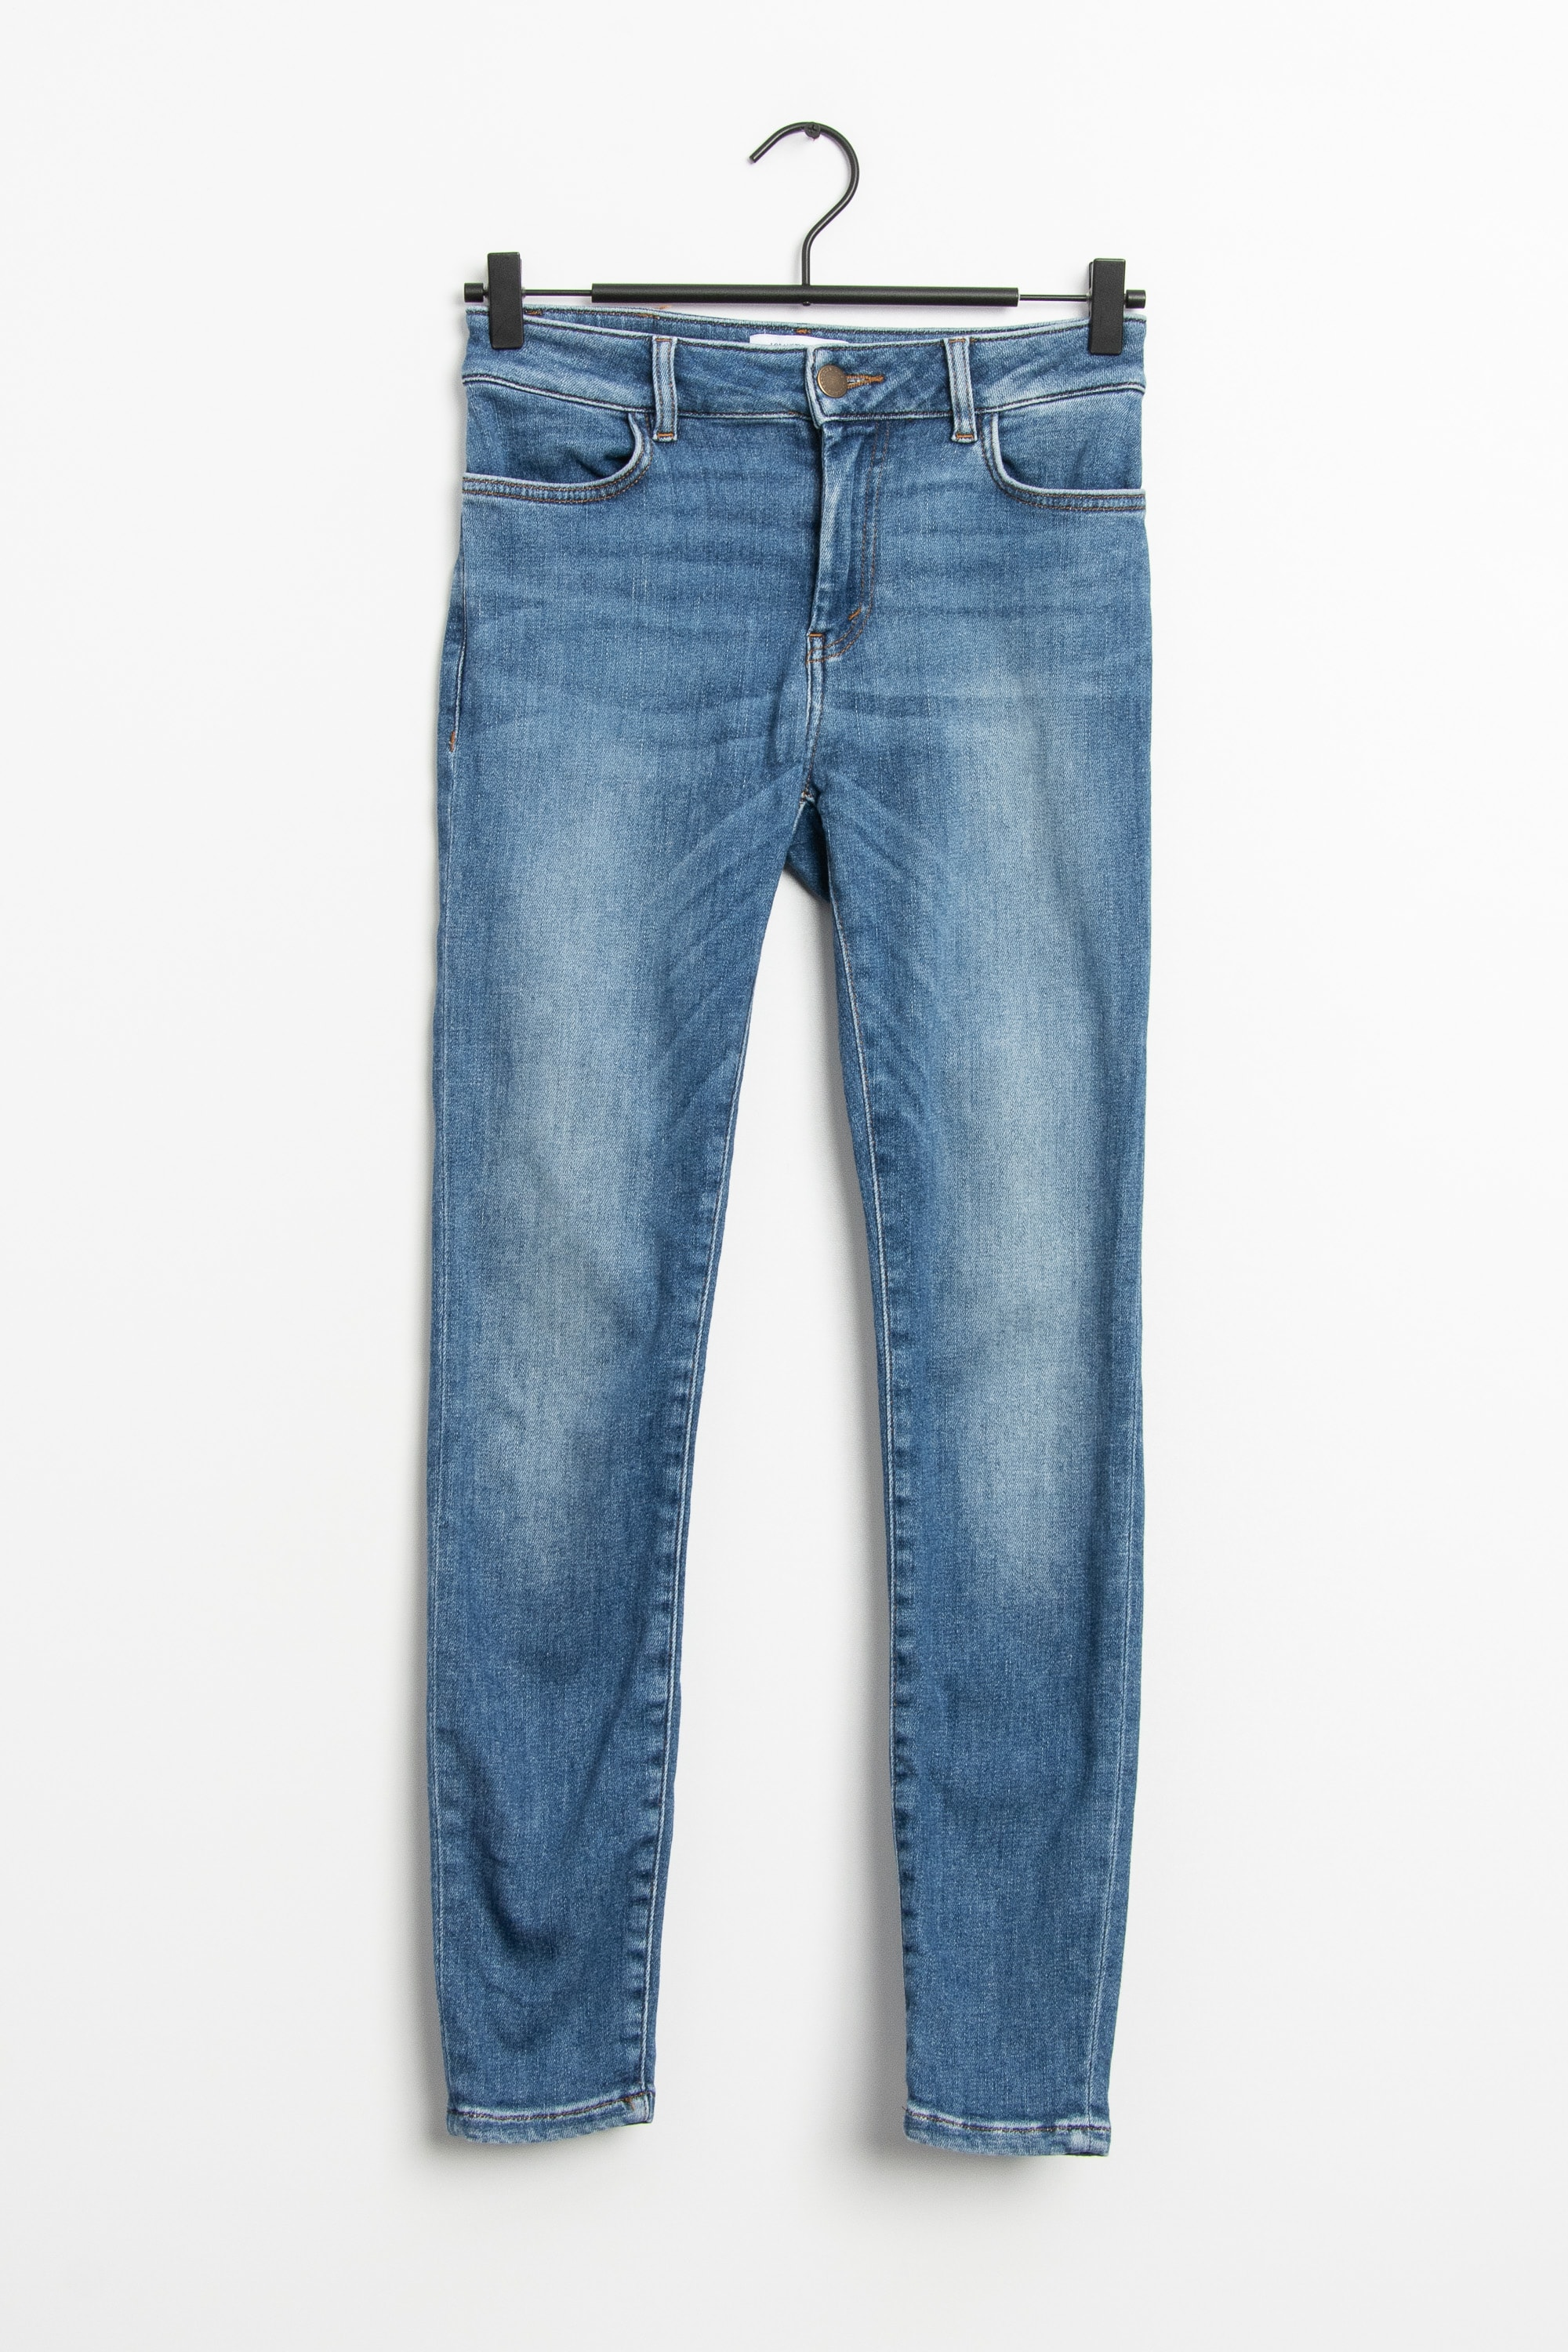 & other stories Jeans Blau Gr.S